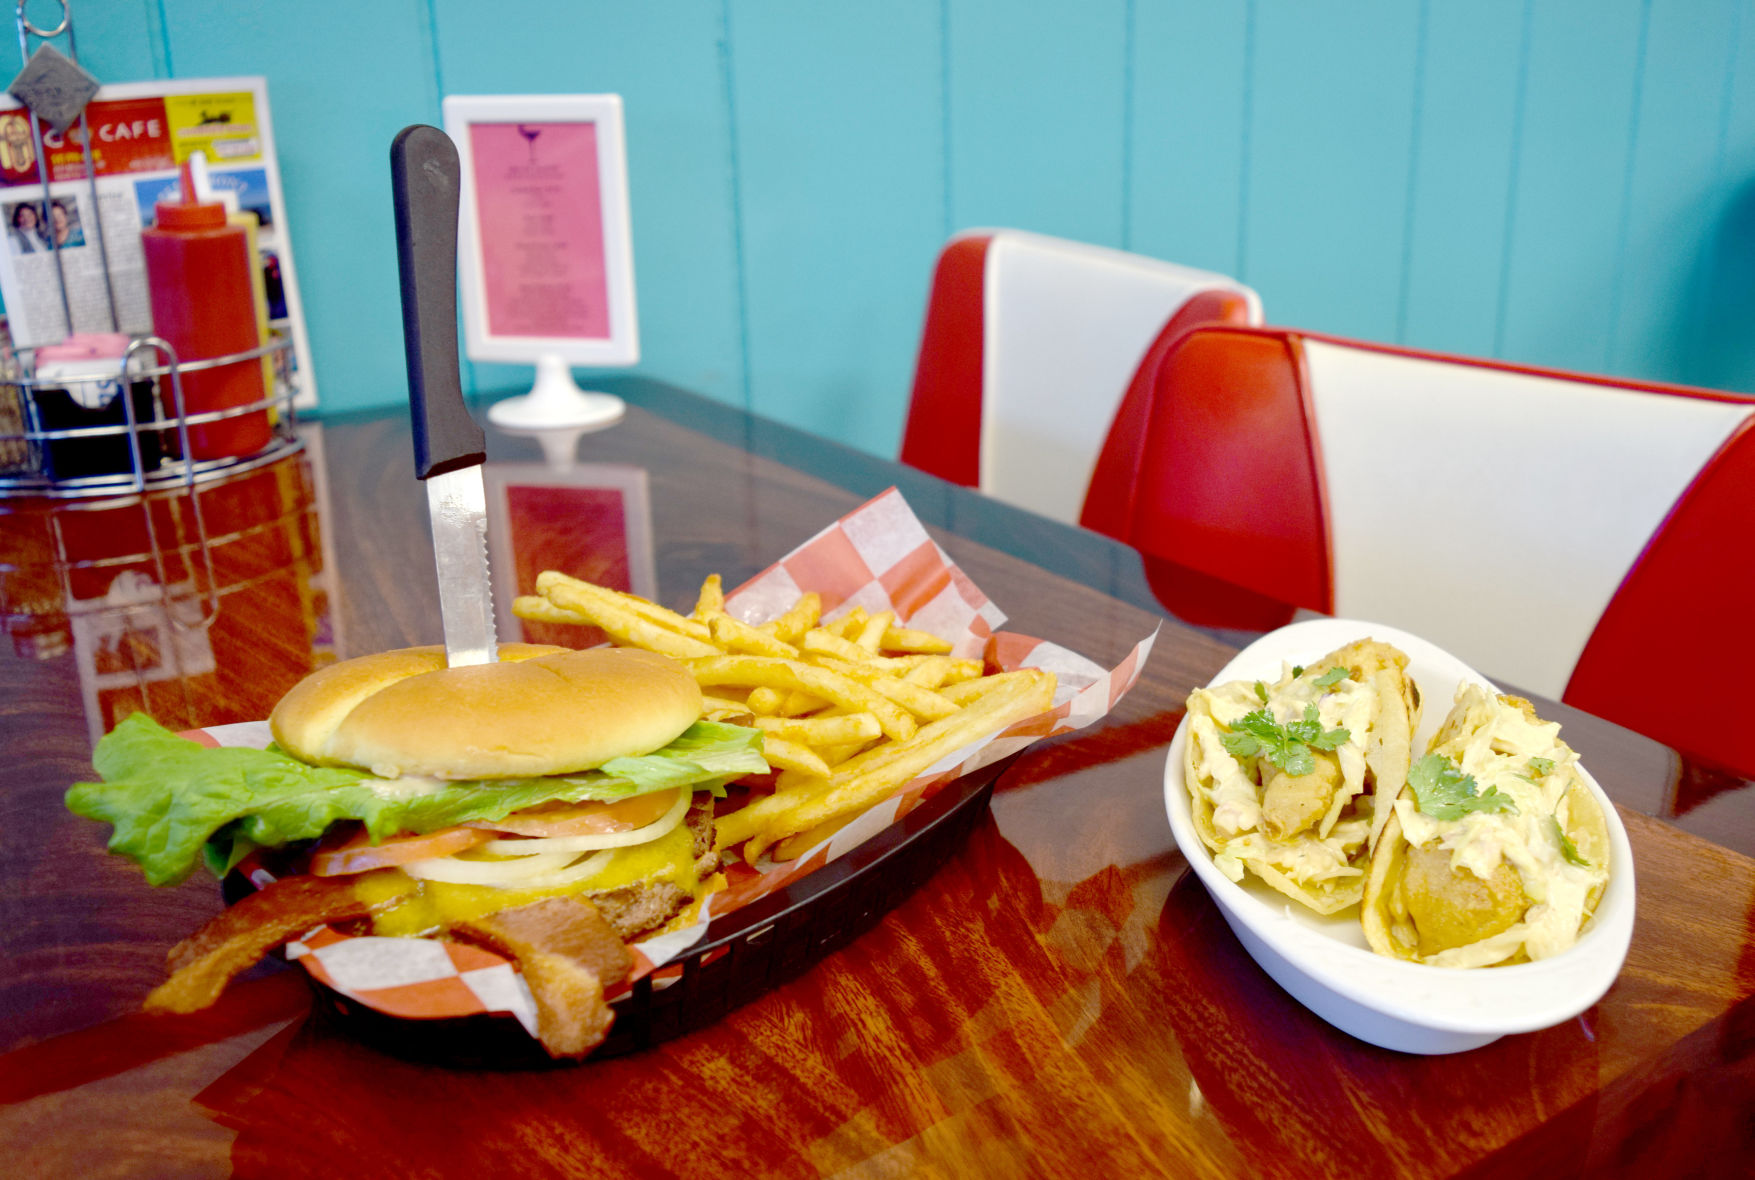 Shaking Up An Old Classic Restaurants Discoverourcoast Com